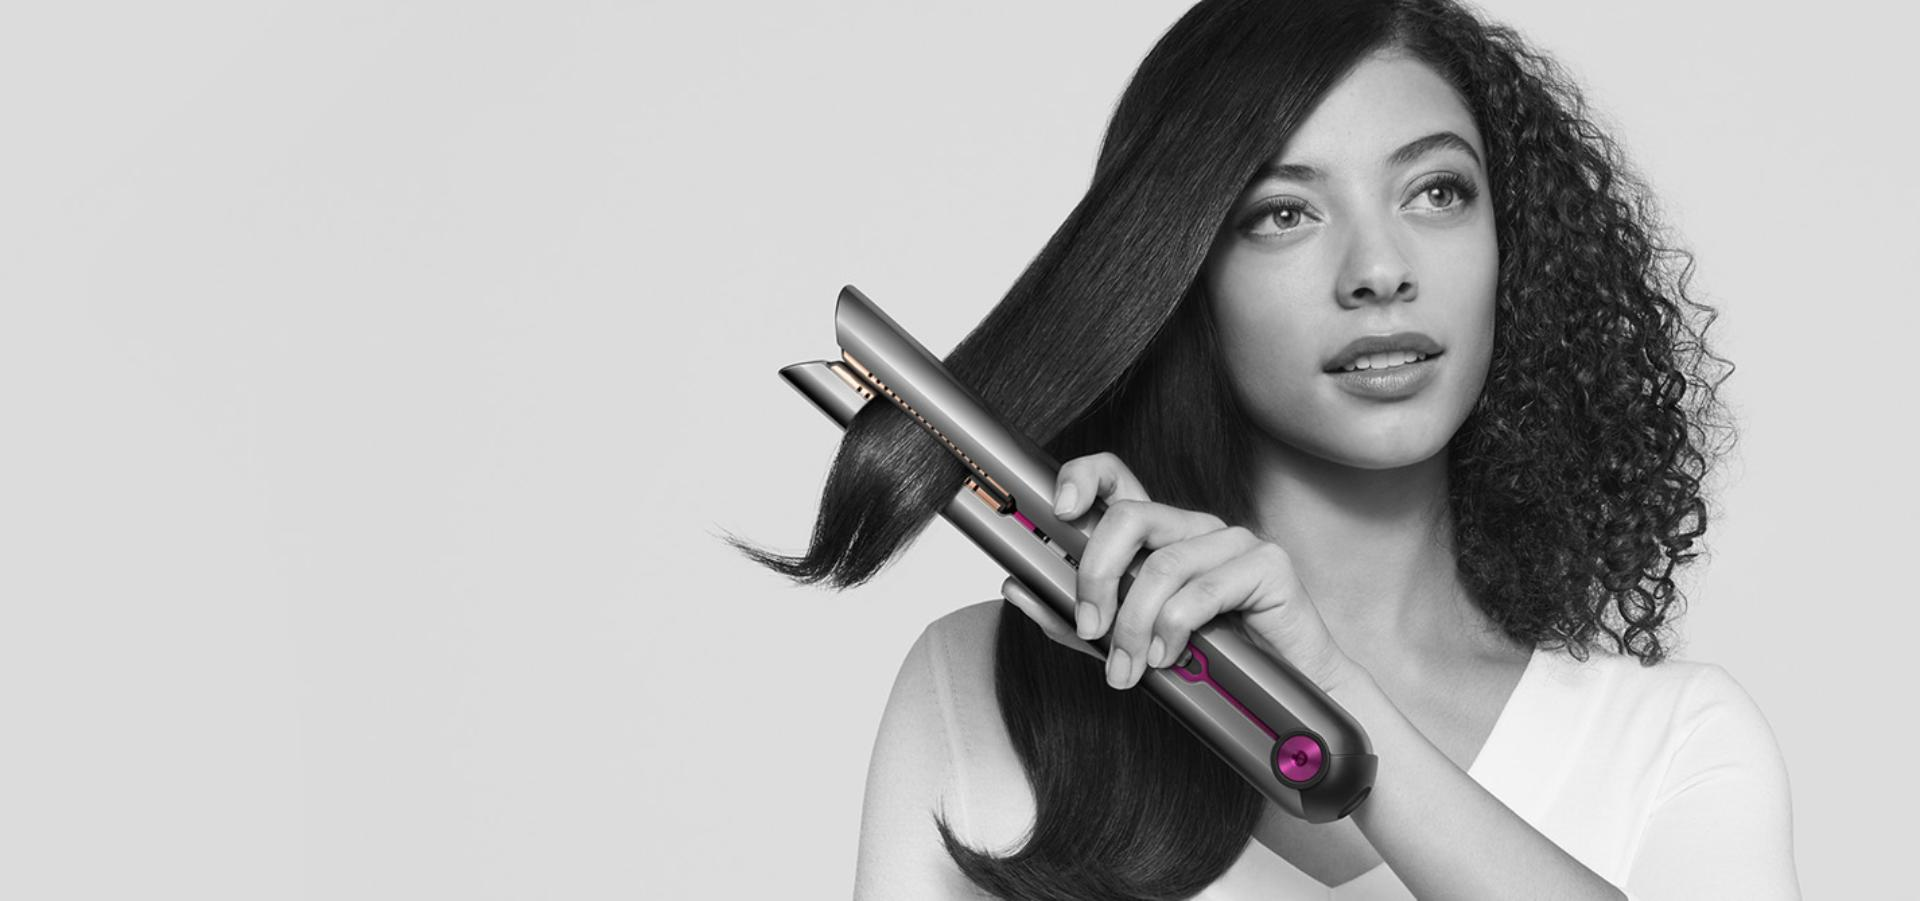 Woman straightening her hair with the Dyson Corrale™ straightener